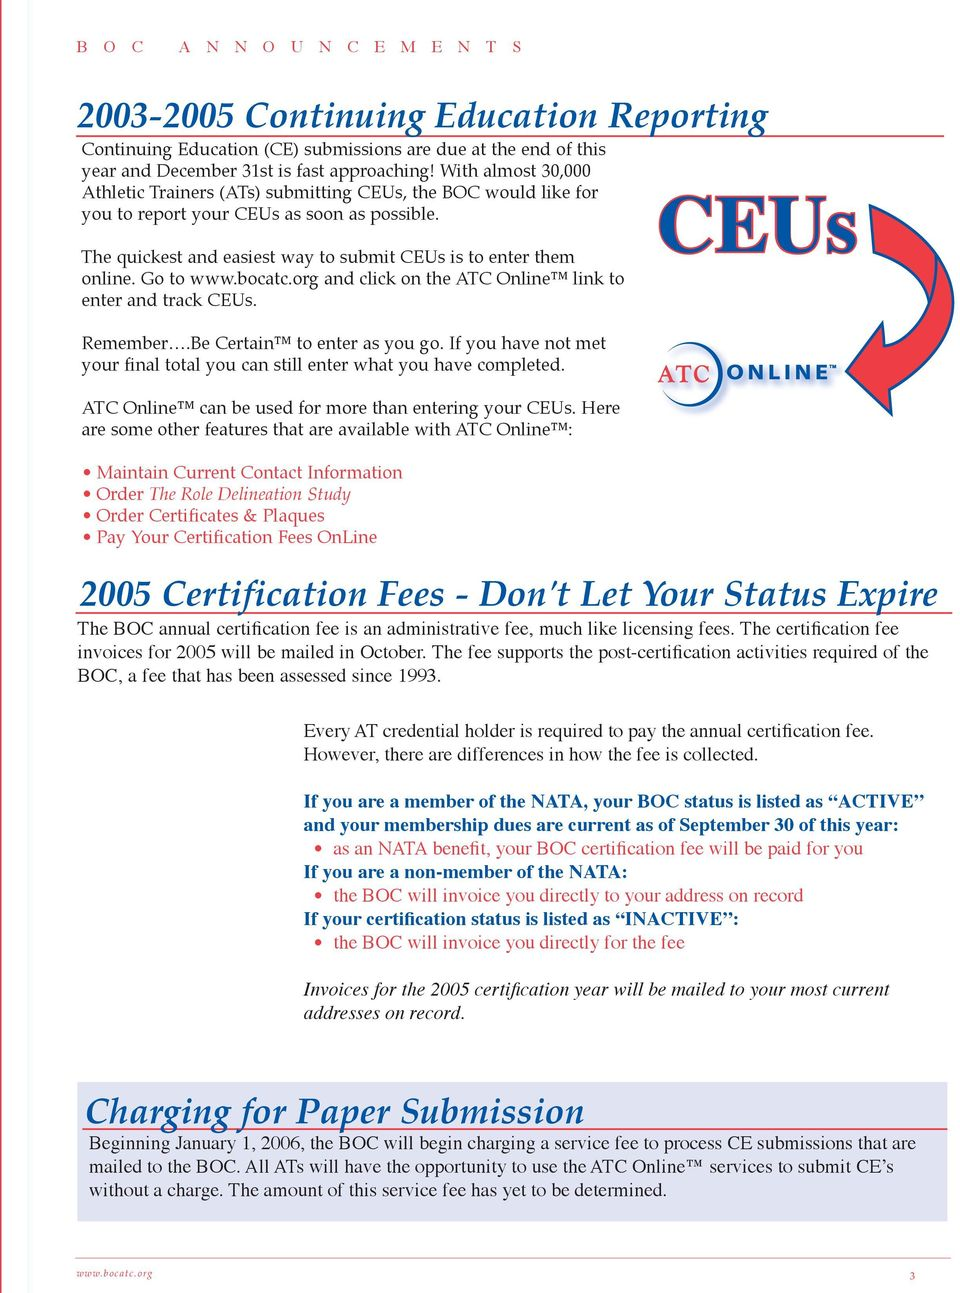 Go To And Click On The Atc Online Link To Enter And Track Ceu S Pdf